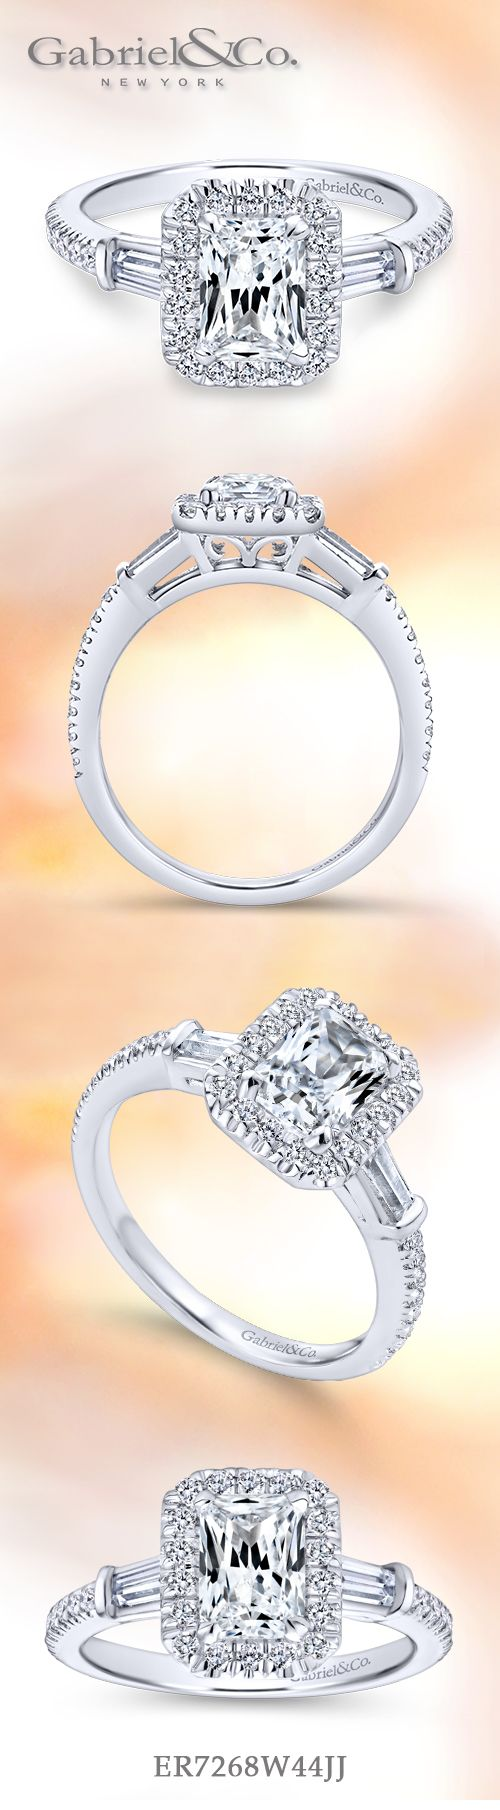 Gabriel & Co. - Voted #1 Most Preferred Bridal Brand.       An emerald cut diamond engagement ring is enhanced by a pave diamond halo.